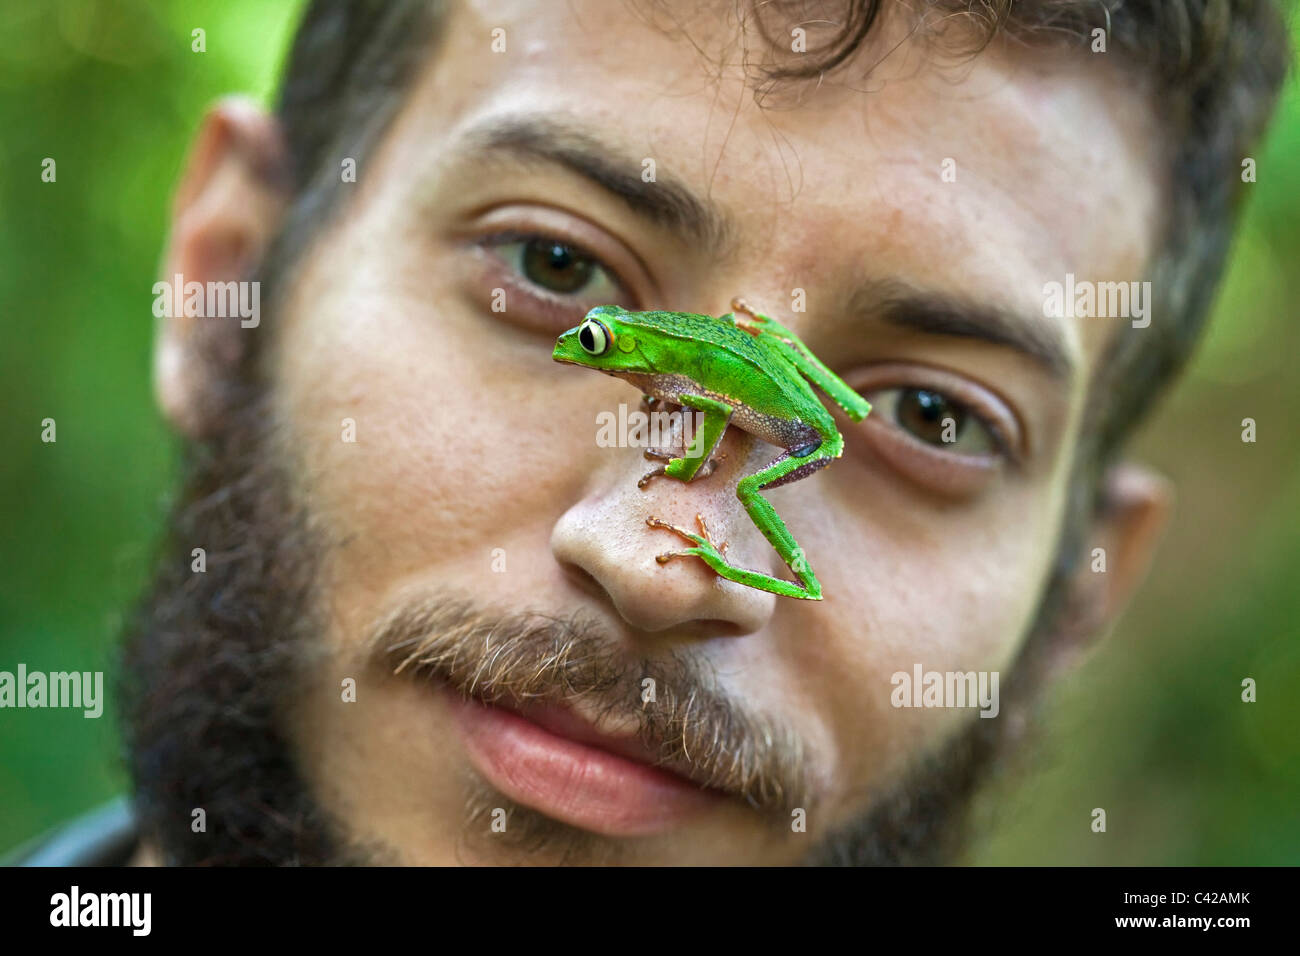 White lined leaf frog ( (Phyllomedusa vaillanti ) on face of researcher / biologist / herpetologist Alejandro Montoga - Stock Image